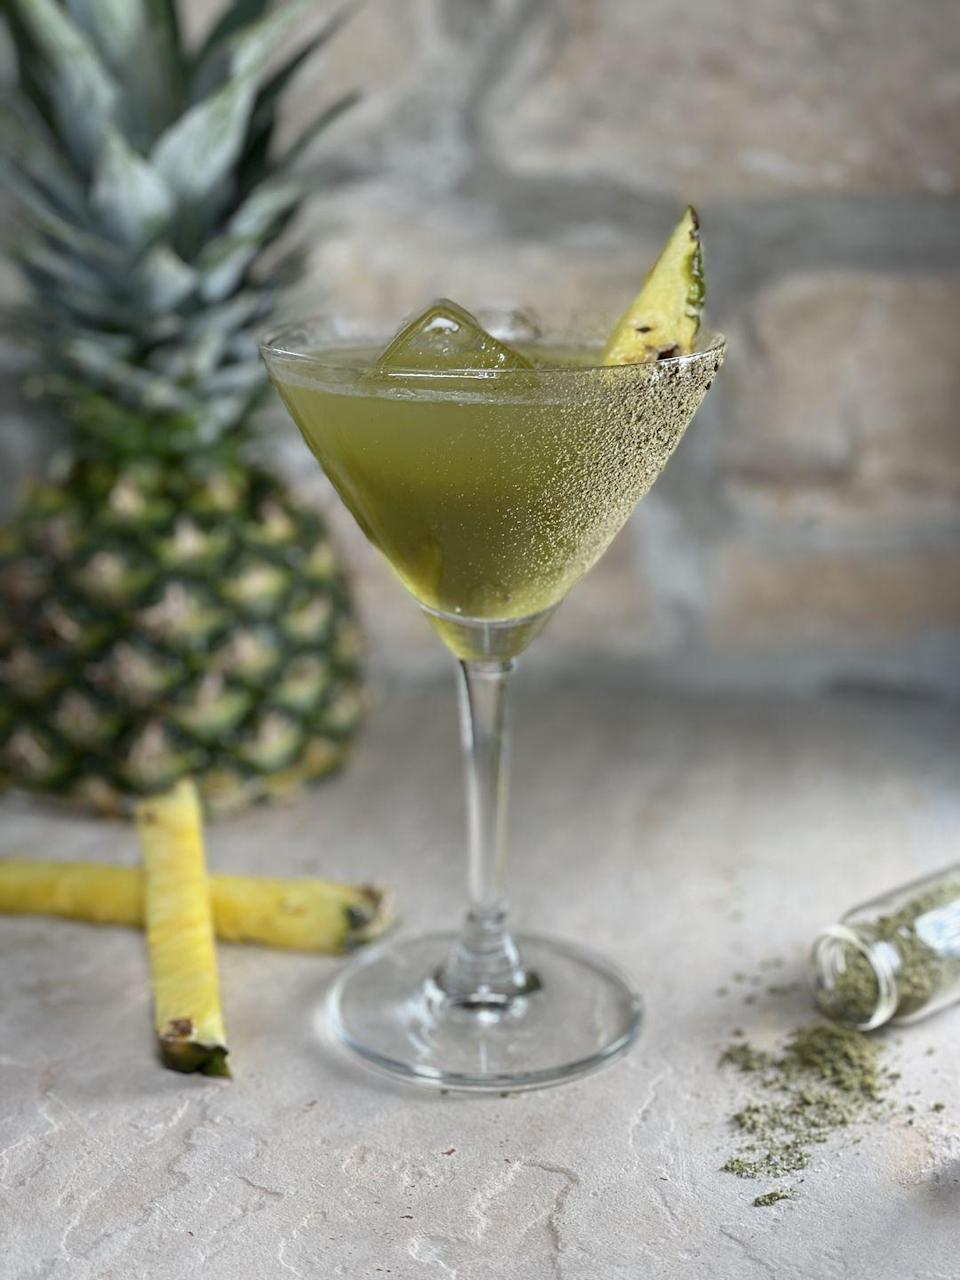 """<p>Embrace one of the traditional colors of Mardi Gras—with this smoky, sweet cocktail. The green drink, which was created by <a href=""""https://www.instagram.com/cocktails4breakfast/"""" rel=""""nofollow noopener"""" target=""""_blank"""" data-ylk=""""slk:Deena Sayers"""" class=""""link rapid-noclick-resp"""">Deena Sayers</a> for <a href=""""https://mezcaldonavega.com/home"""" rel=""""nofollow noopener"""" target=""""_blank"""" data-ylk=""""slk:Doña Vega"""" class=""""link rapid-noclick-resp"""">Doña Vega</a>, combines an equally earthy and fruity pineapple matcha juice, a peppery mezcal, and refreshing lime juice for a truly unique flavor profile.</p><p><strong>Ingredients:</strong></p><p><em>For pineapple matcha juice:</em><br></p><p>30 oz. Fresh pineapple juice<br></p><p>5 oz. Giffard banana liquor<br></p><p>5 oz. Agave syrup<br></p><p>5 tsp. Matcha powder</p><p>1/8 tsp. salt</p><p>2.5 tsp. ground cardamom</p><p><em>For cocktail: </em></p><p><em>2 oz. </em>Doña Vega Mezcal Espadin<br></p><p>2.25 oz. Pineapple matcha juice<br></p><p>.25 oz. Fresh lime juice </p><p>Mezsal Holy Hemp salt</p><p>Pineapple wedges</p><p><strong>Directions:</strong></p><p>To create the pineapple matcha juice, blend all of the ingredients, making sure all the matcha powder has dissolved. (Note: The juice will stay fresh for up to seven days.) Then, rim a rocks glass with Mezsal Holy Hemp salt and set aside. In a shaker, add all of the ingredients as well as some ice. Shake well, strain into the salted rocks glass over fresh ice, and garnish with pineapple wedges. </p>"""